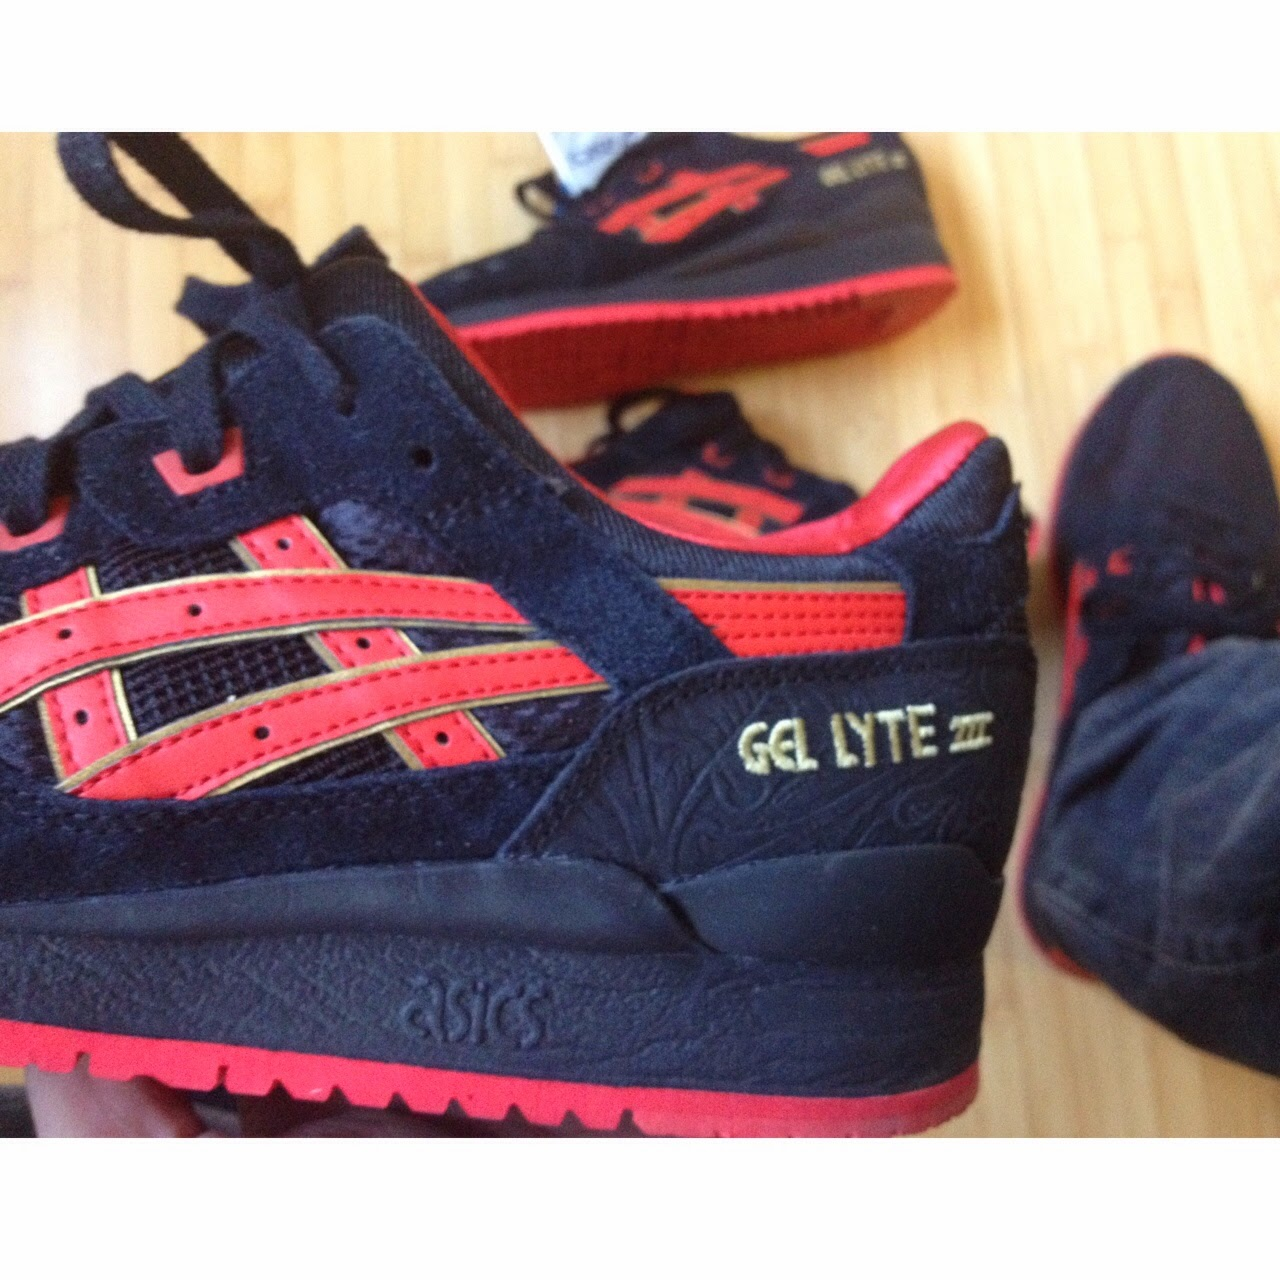 fresh laces, hater gel lyte III, asics, sneaker collection